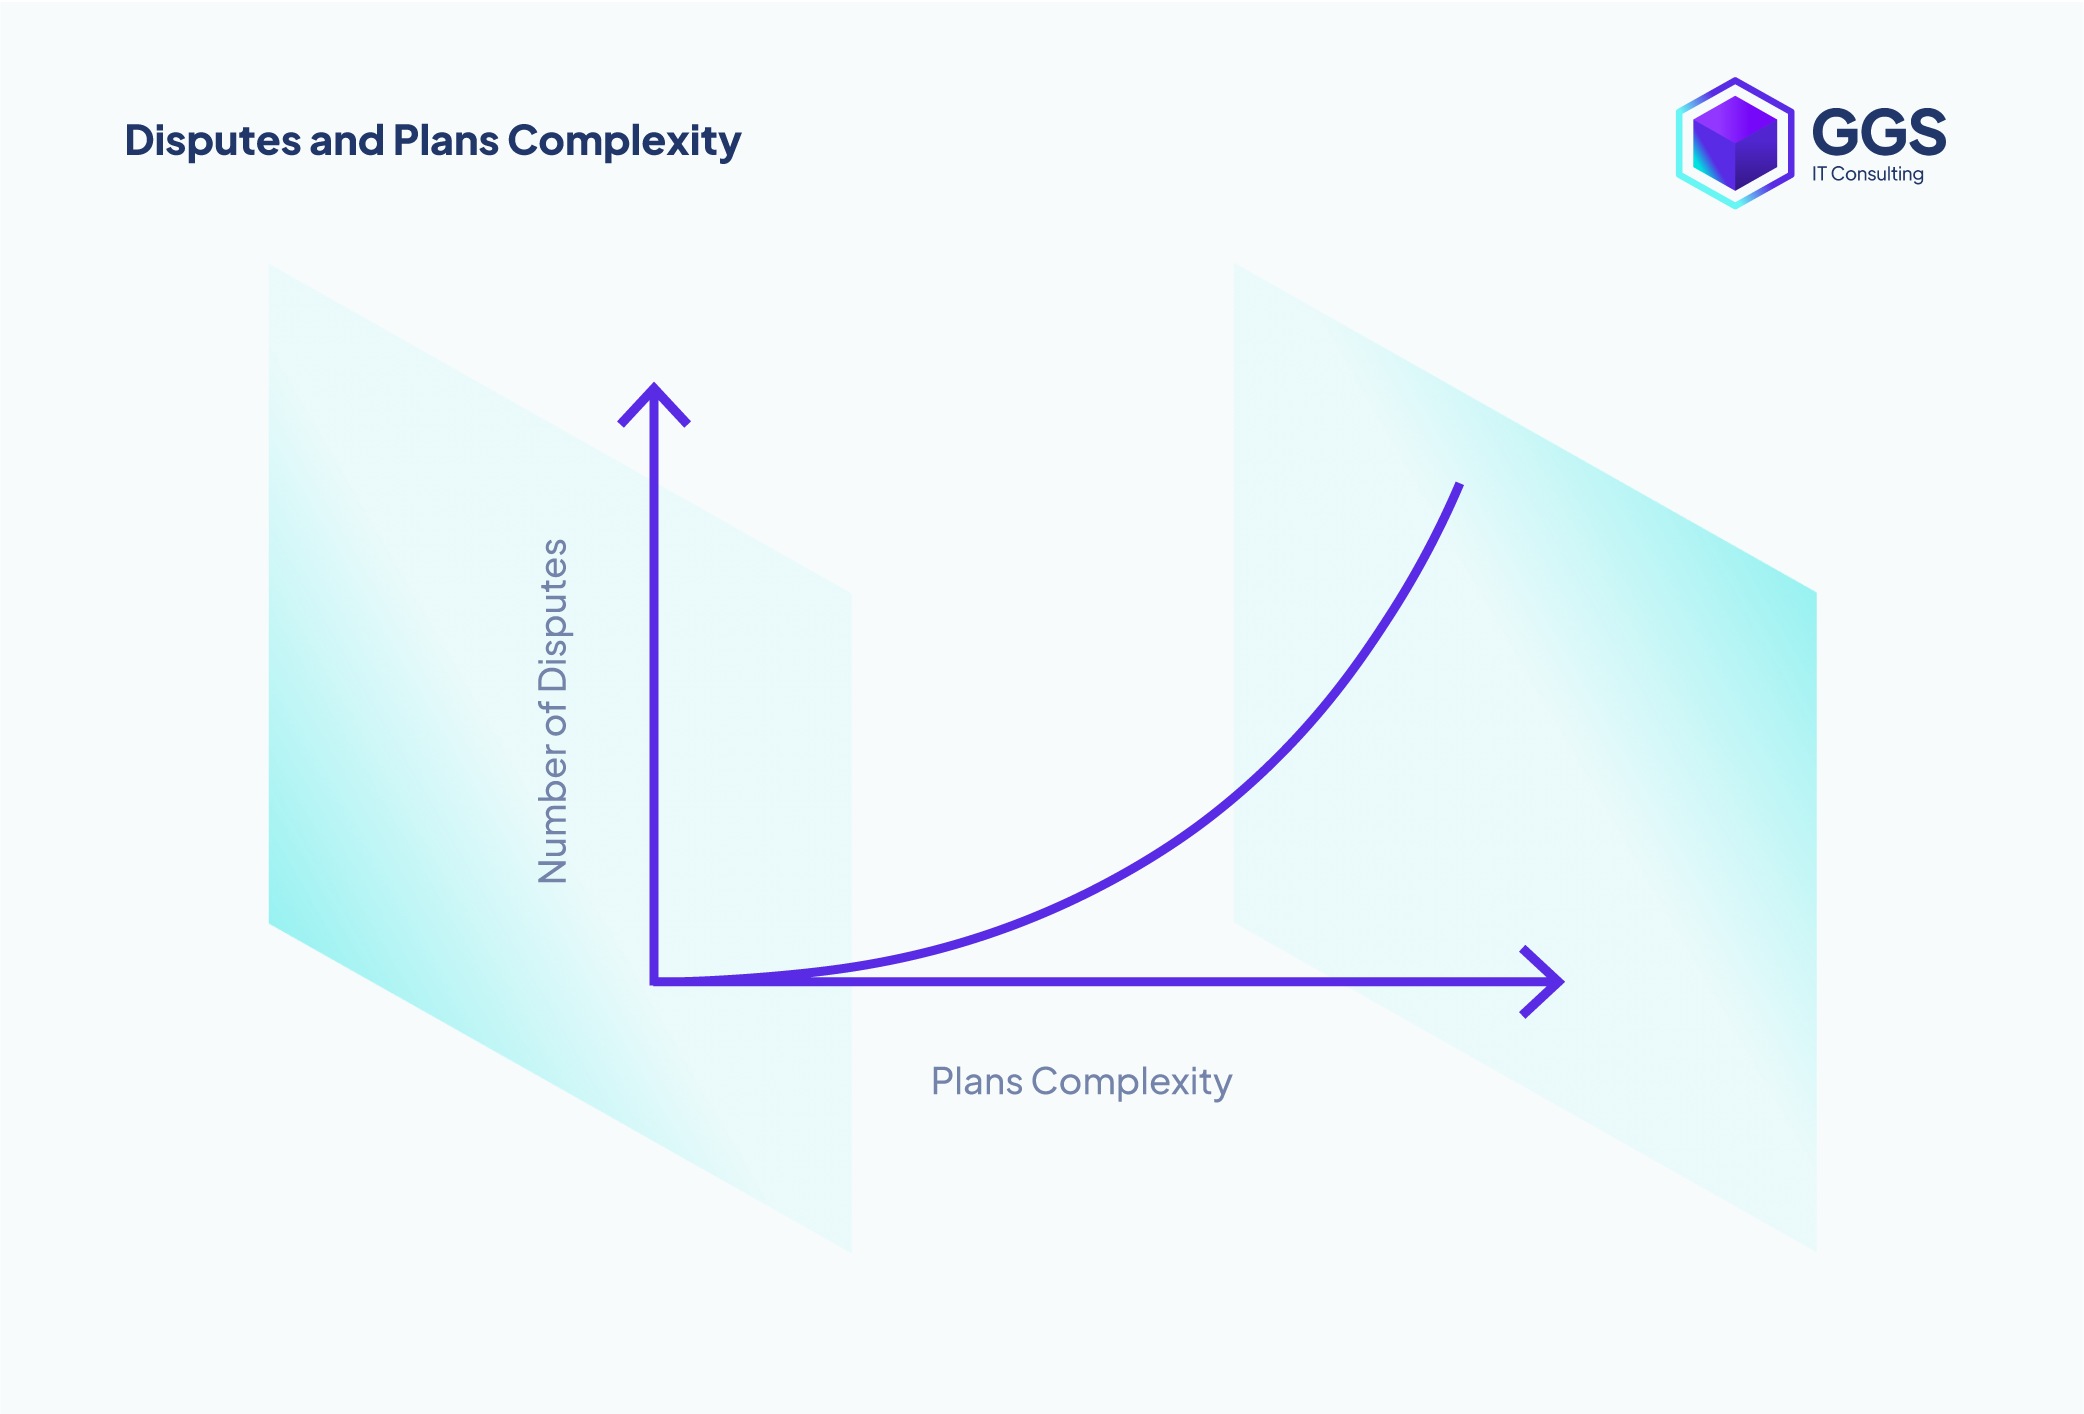 Disputes and Plans Complexity